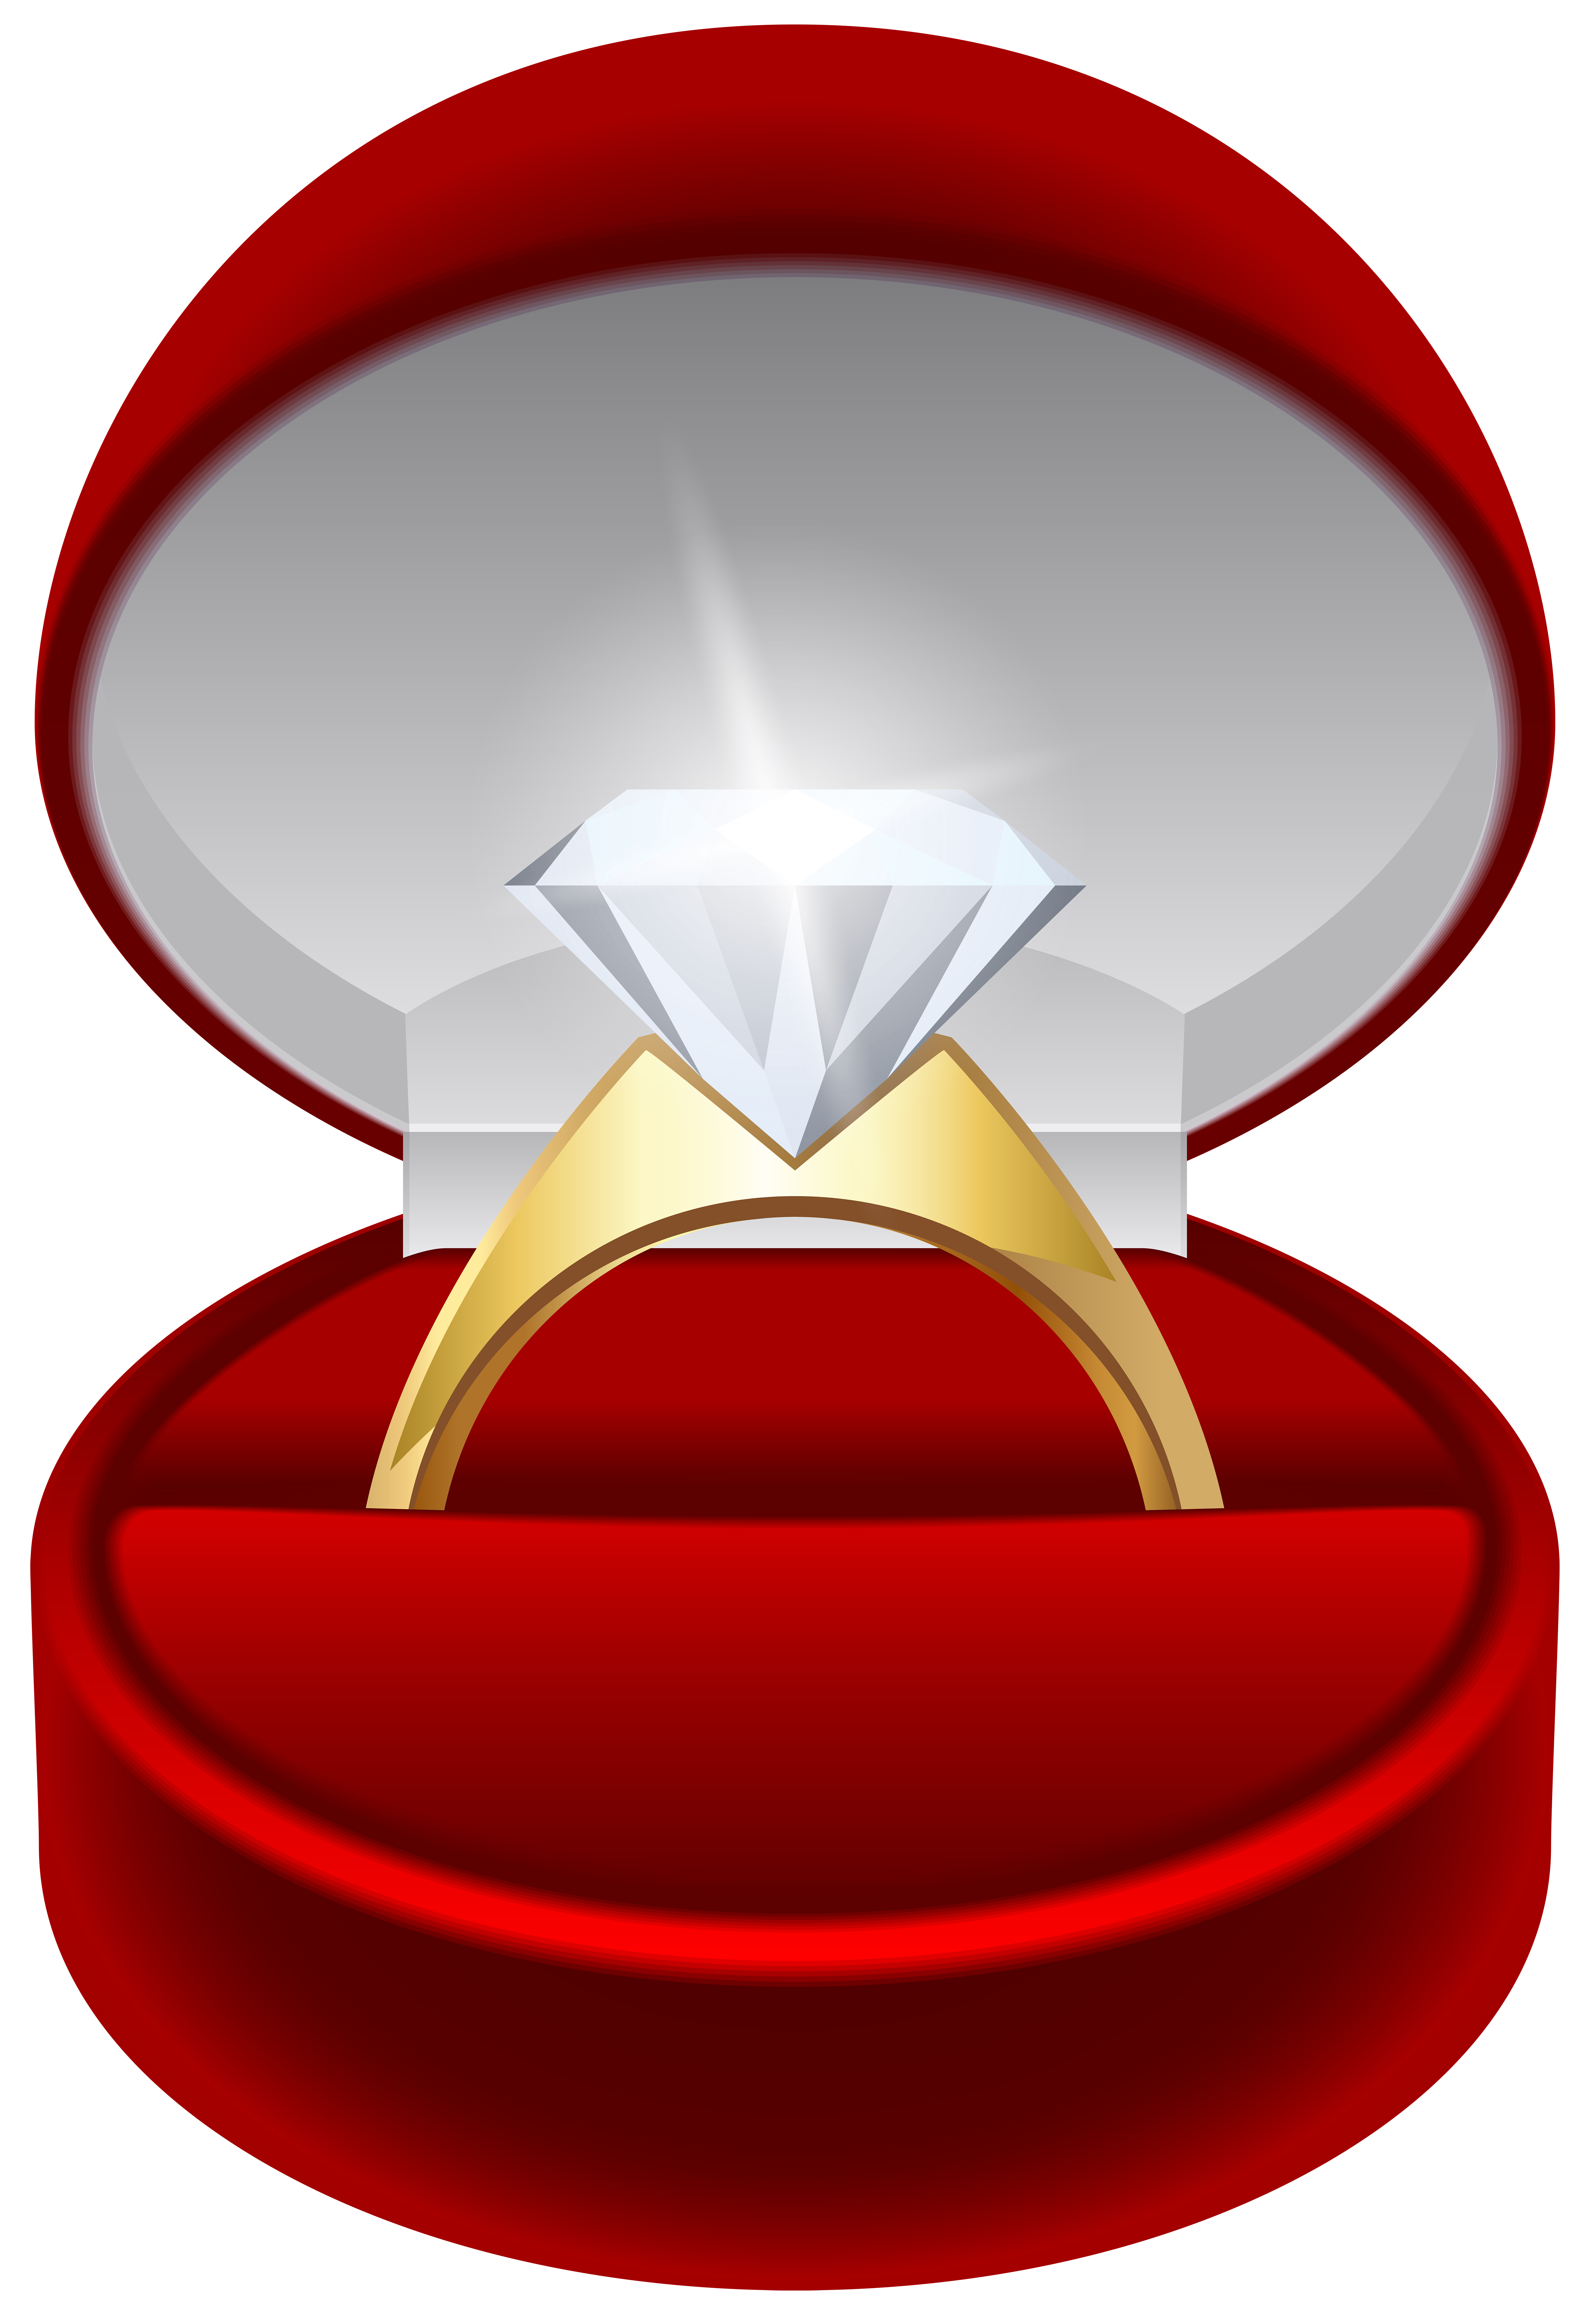 Engagement ring png transparent. Diamond clipart coloring page